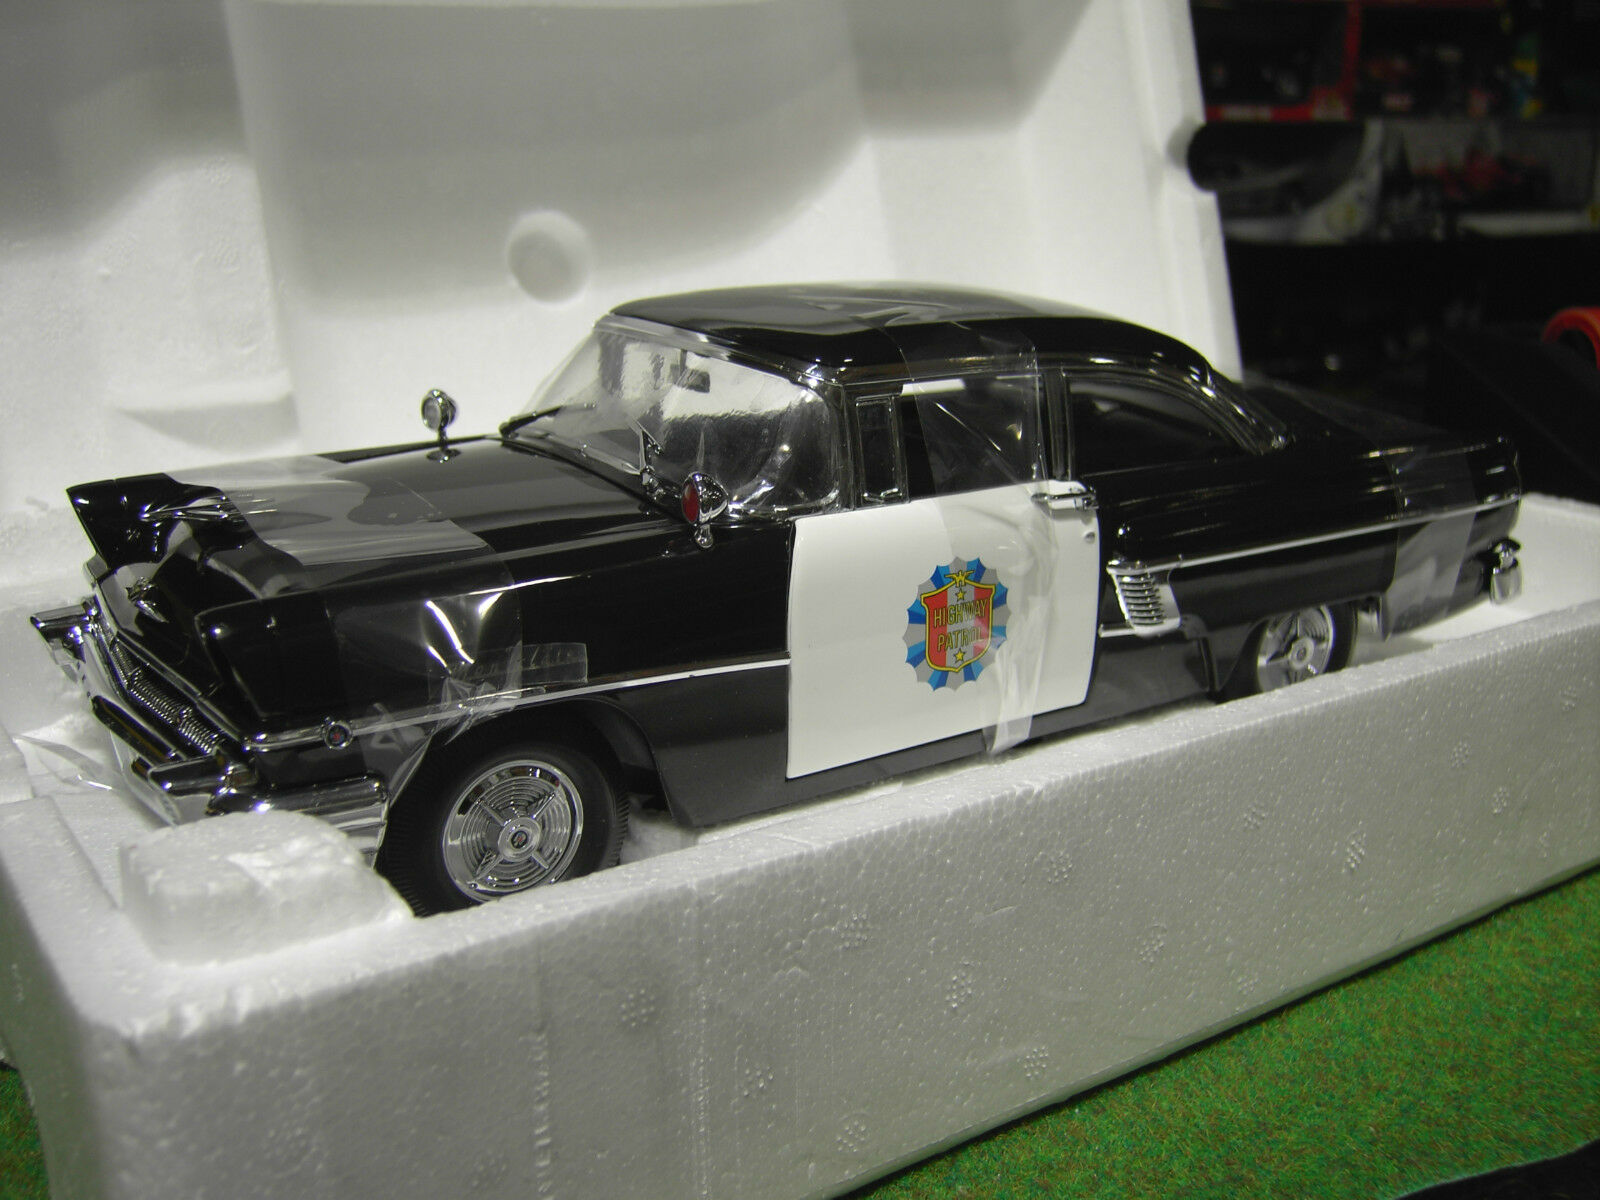 MERCURY MONTCLAIR 1956 HARD TOP POLICE CAR 1/18 voiture miniature SUN STAR 5146